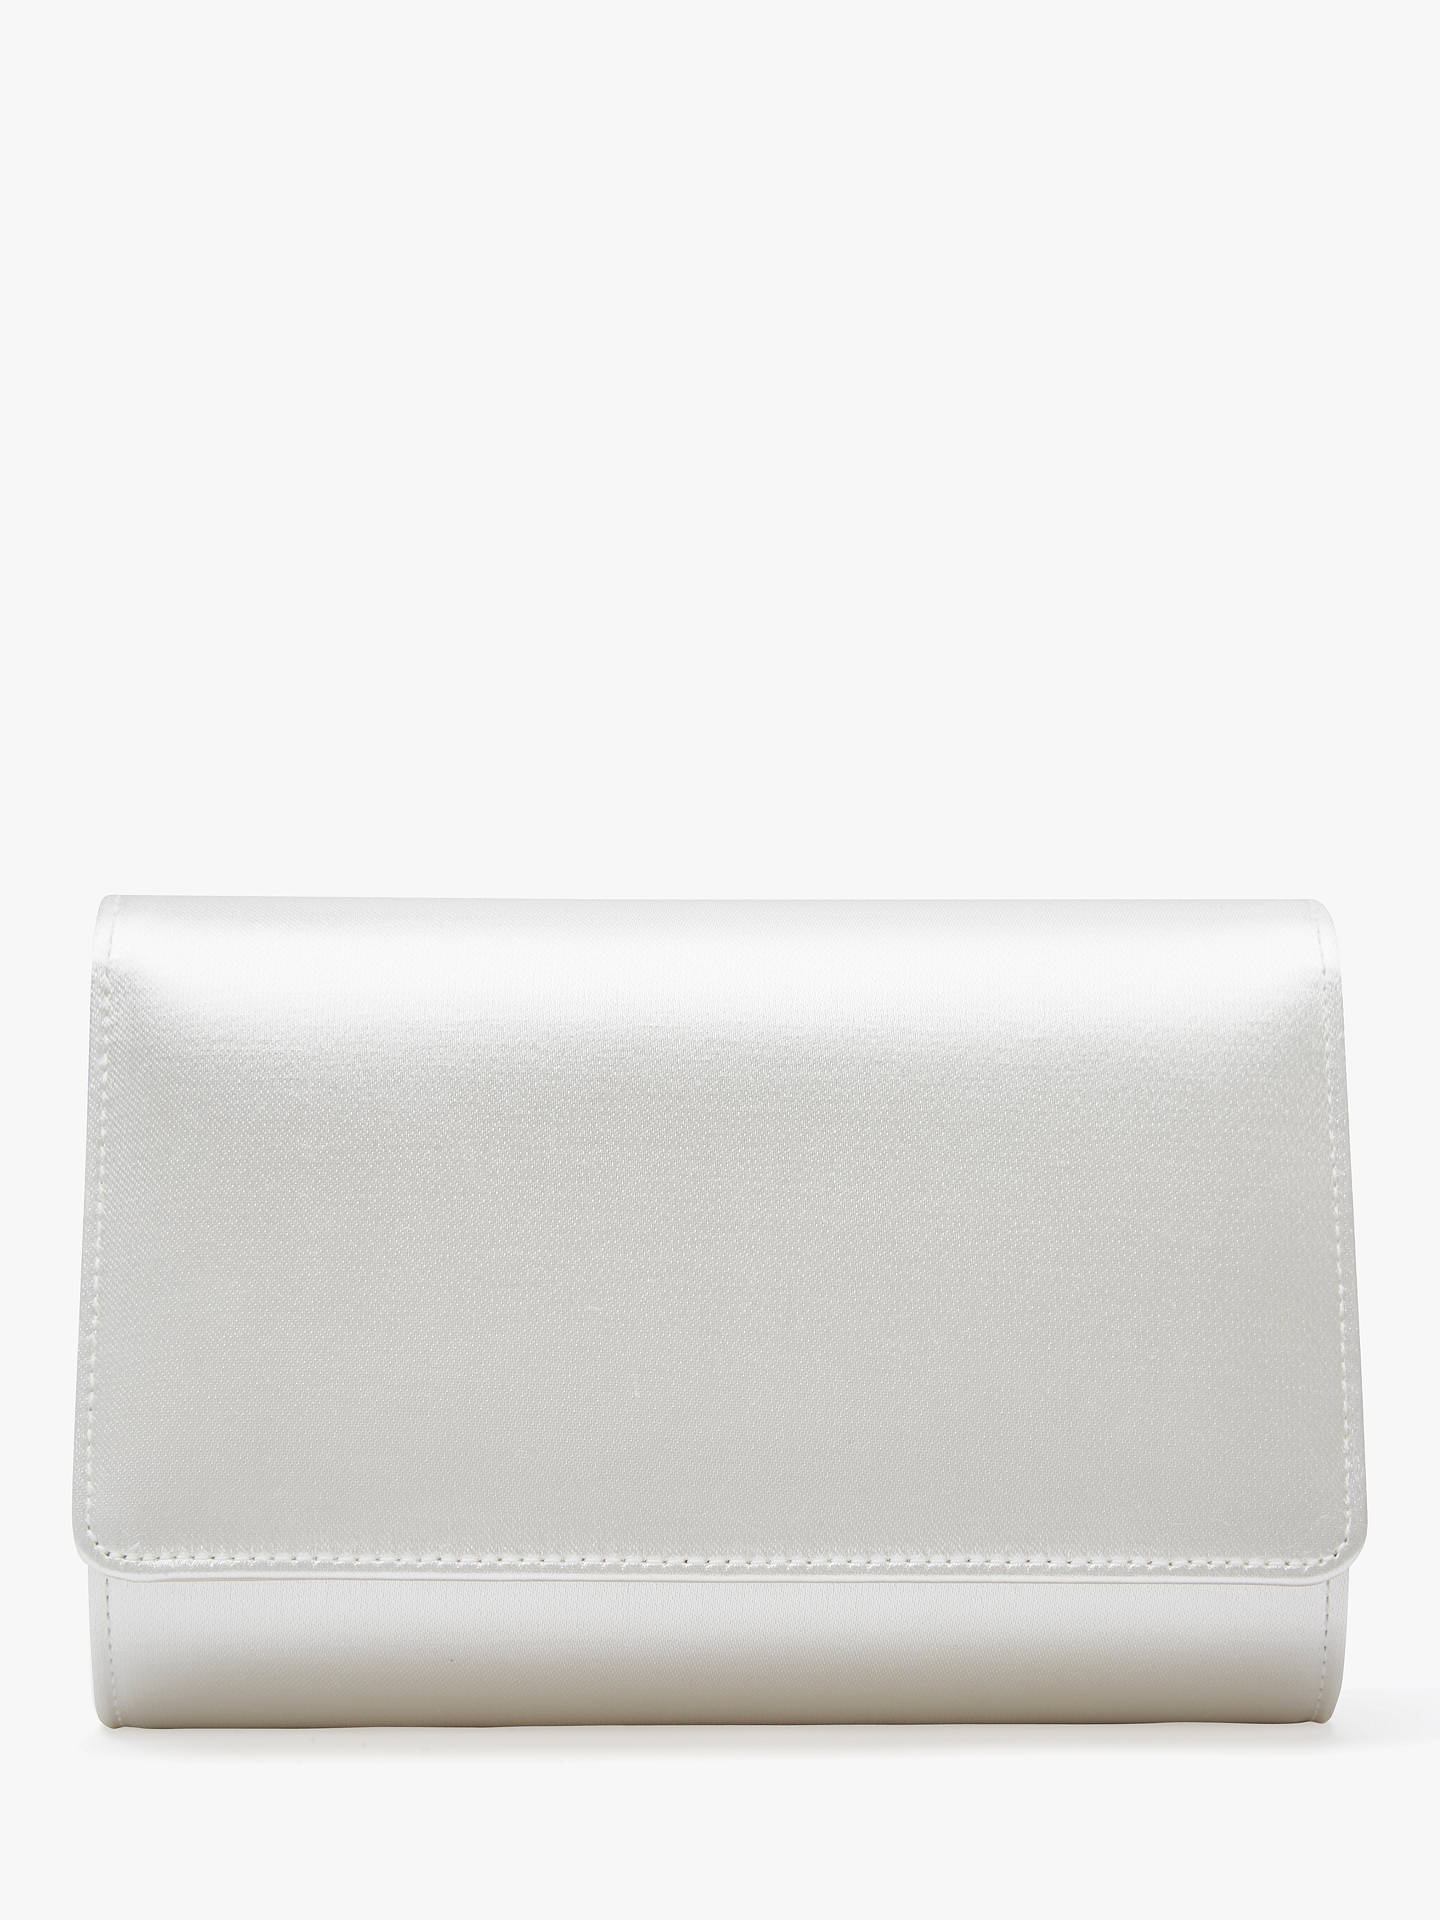 new products great look best place for Rainbow Club Dafnee Clutch Bag, Ivory